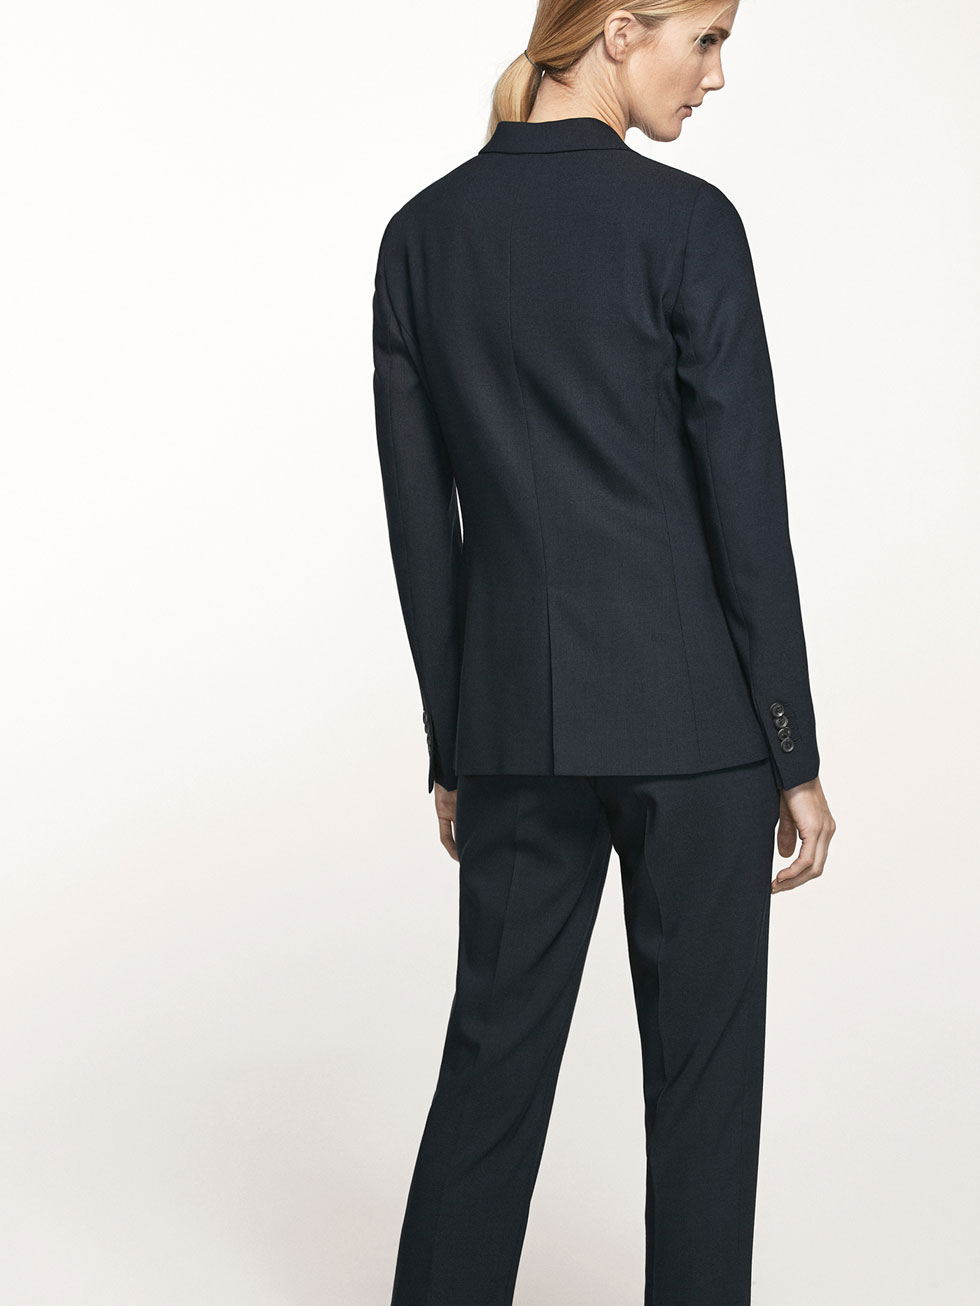 NAVY BLUE SUIT JACKET - Women - Massimo Dutti